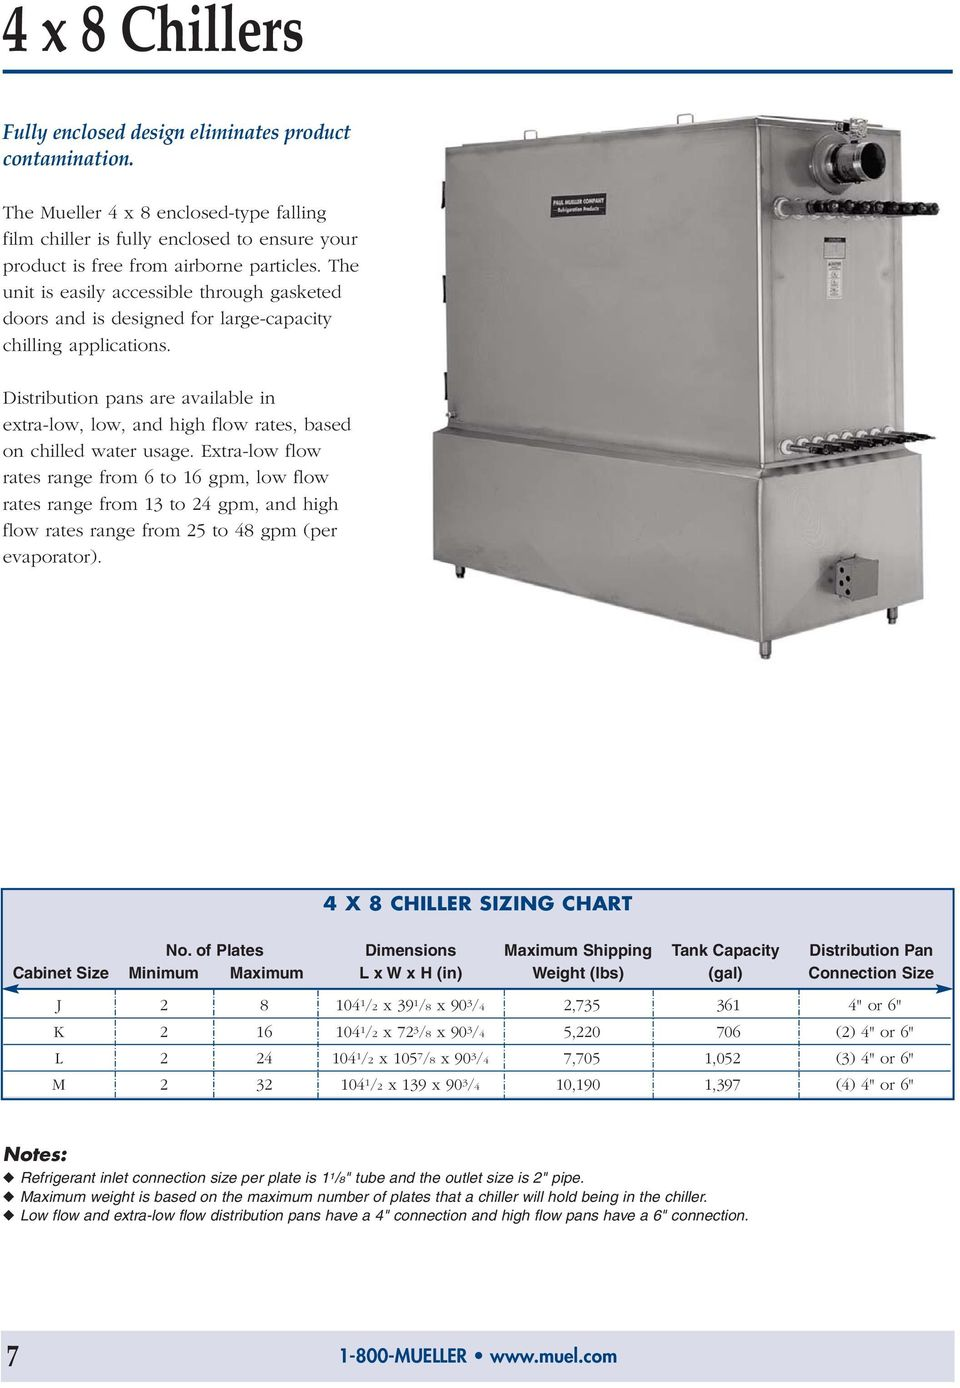 Distribution pans are available in extra-low, low, and high flow rates, based on chilled water usage.